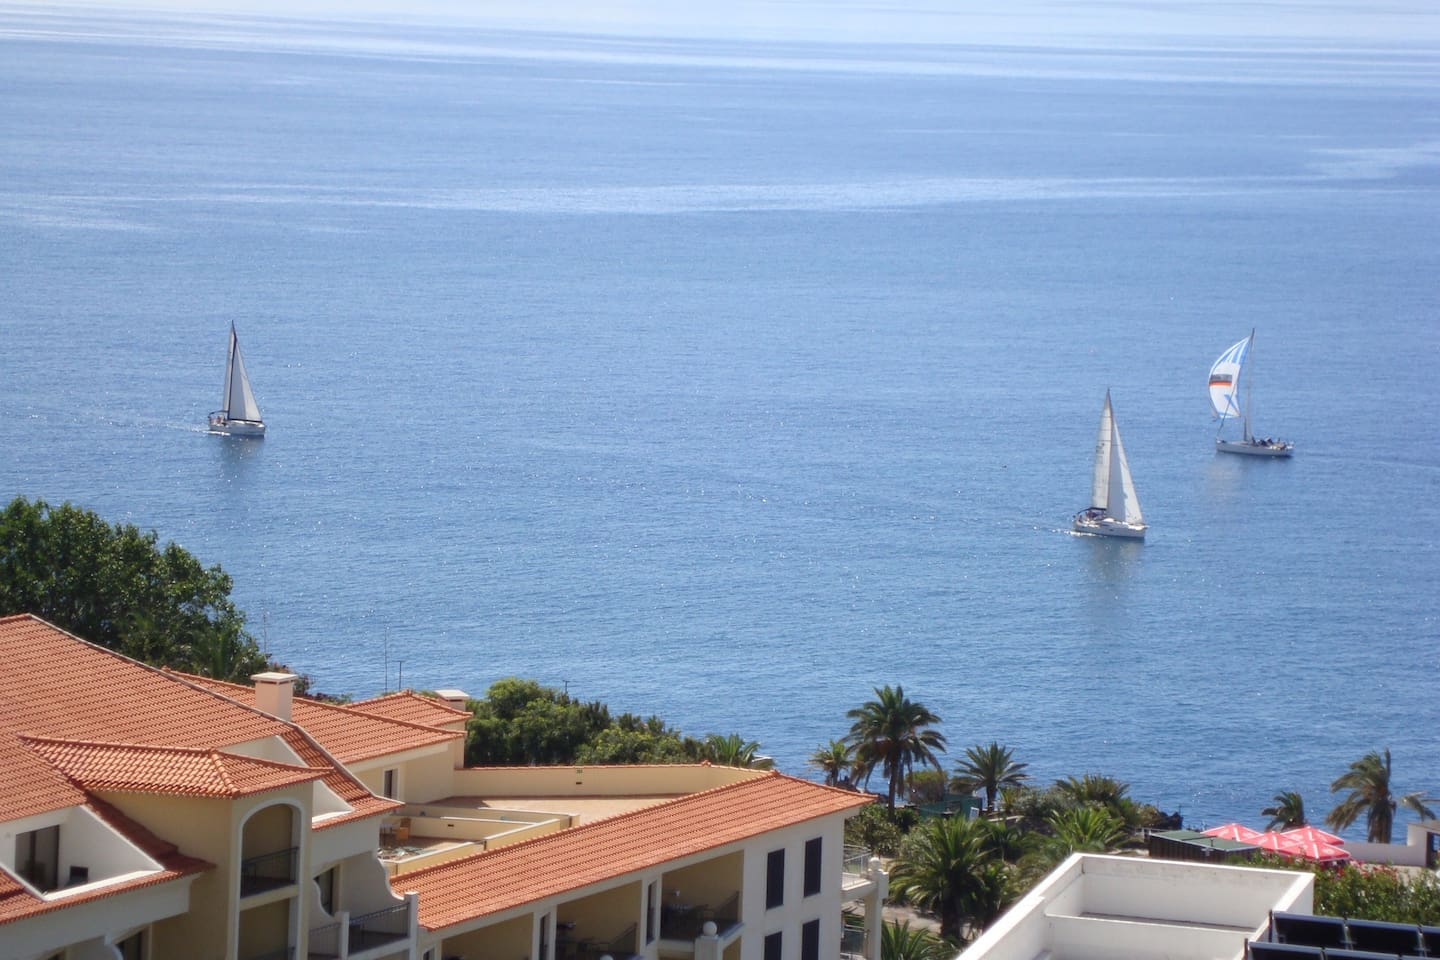 You can watch a sailing regata at the balcony !